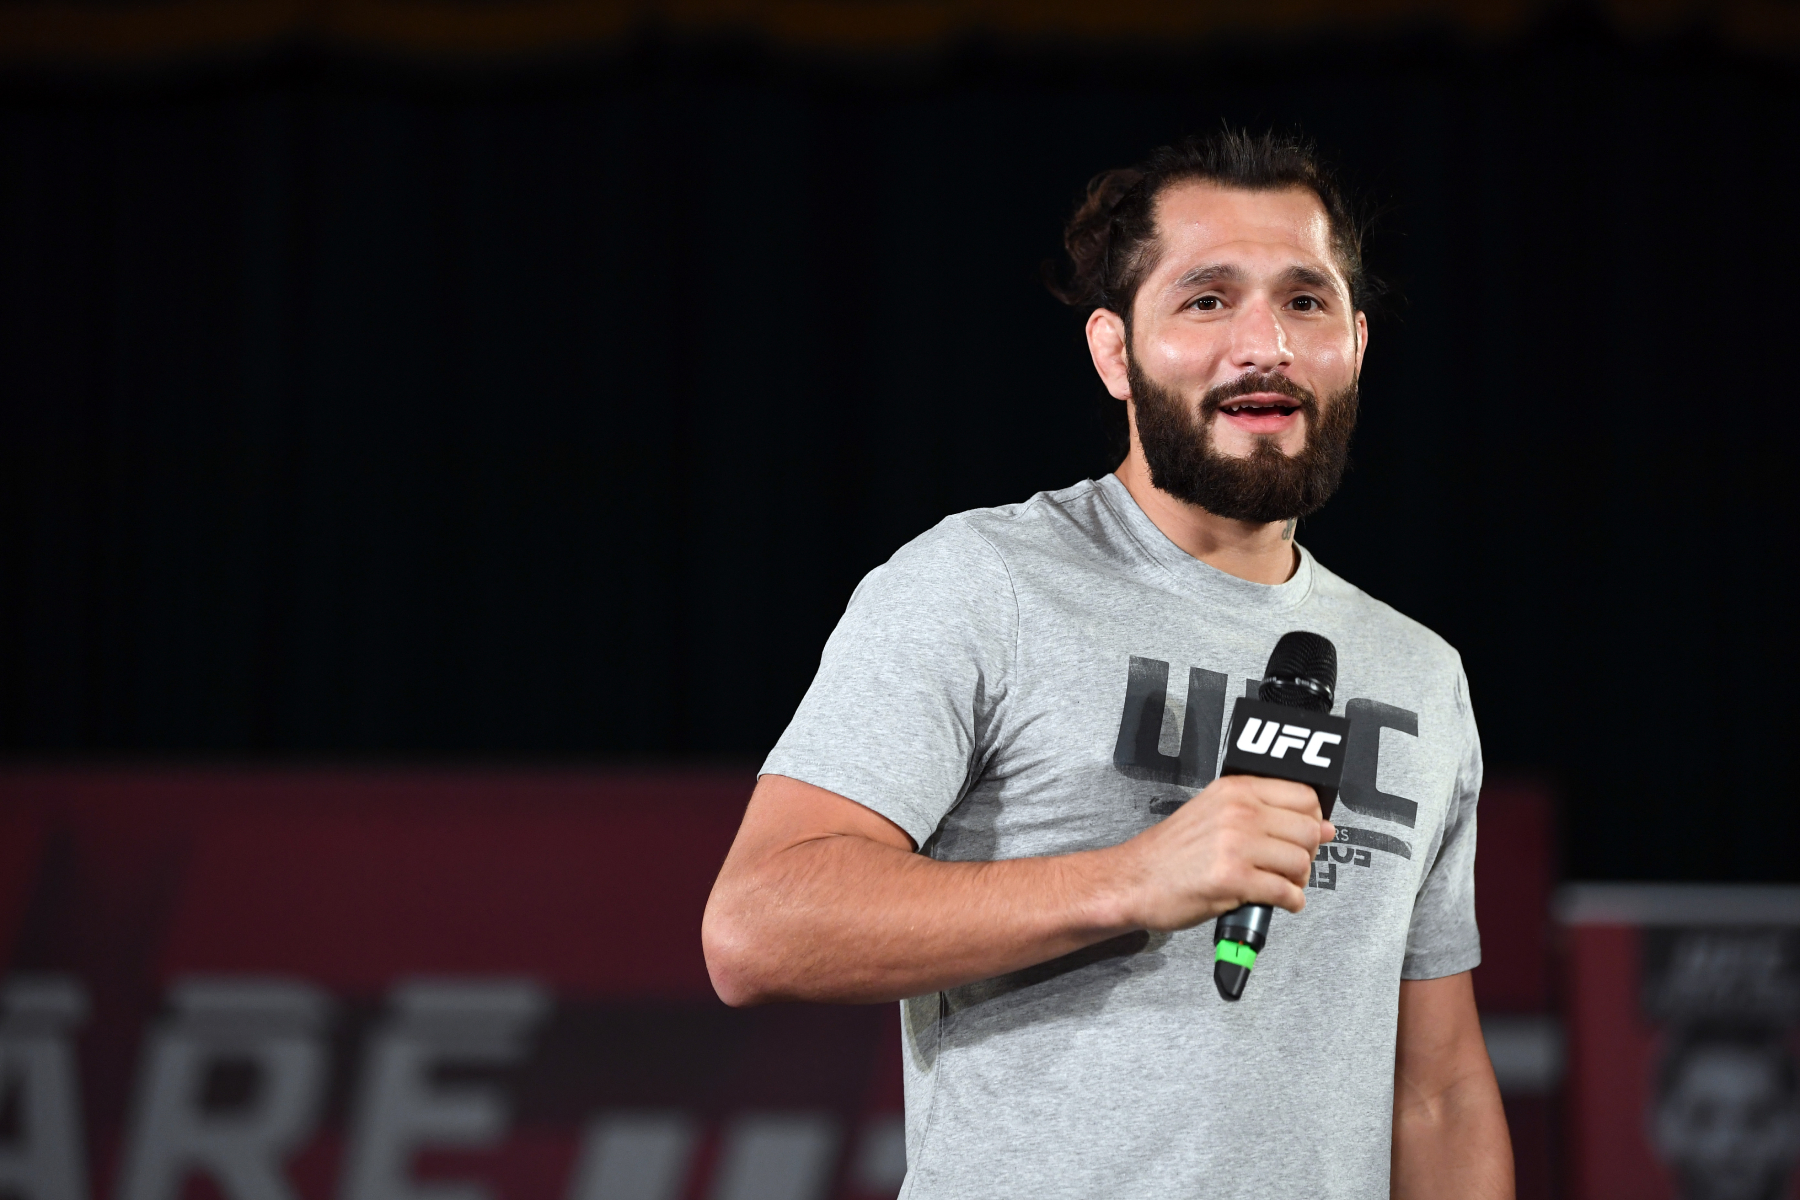 Jorge Masvidal has a massive fight at UFC 251 against Kamaru Usman. However, his dad won the fight of his life by escaping communism.